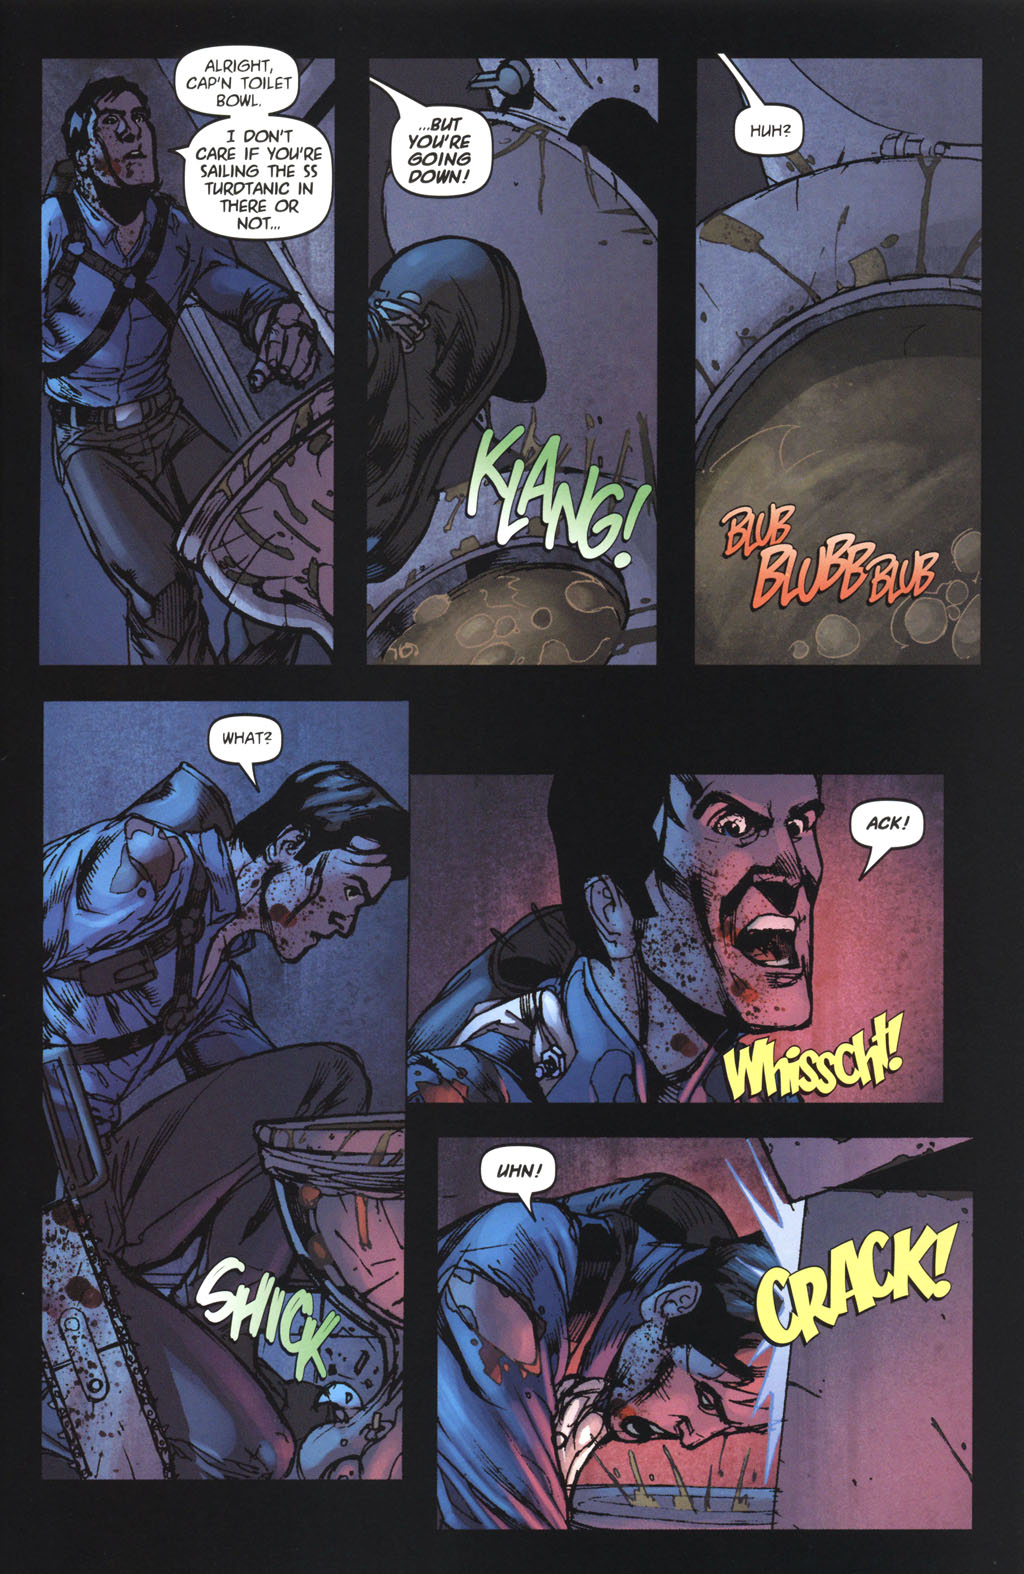 Army of Darkness (2006) Issue #6 #2 - English 23